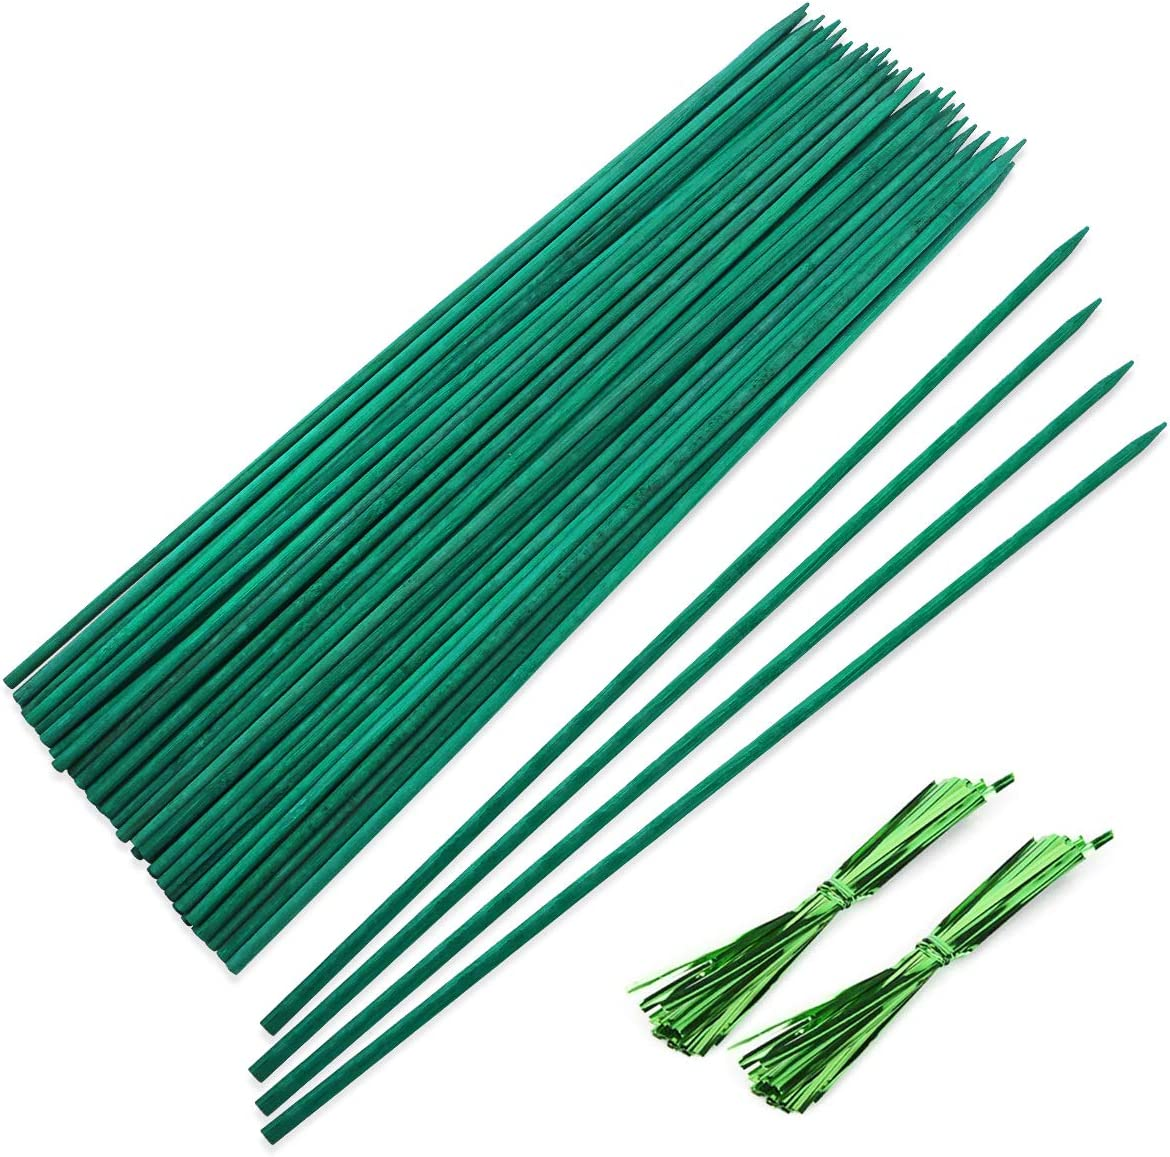 SKPPC 50 PCS Garden Wood Stakes, Floral Plant Support Garden Stakes, Wooden Sign Posting Garden Sticks for Plants, 12 Inch